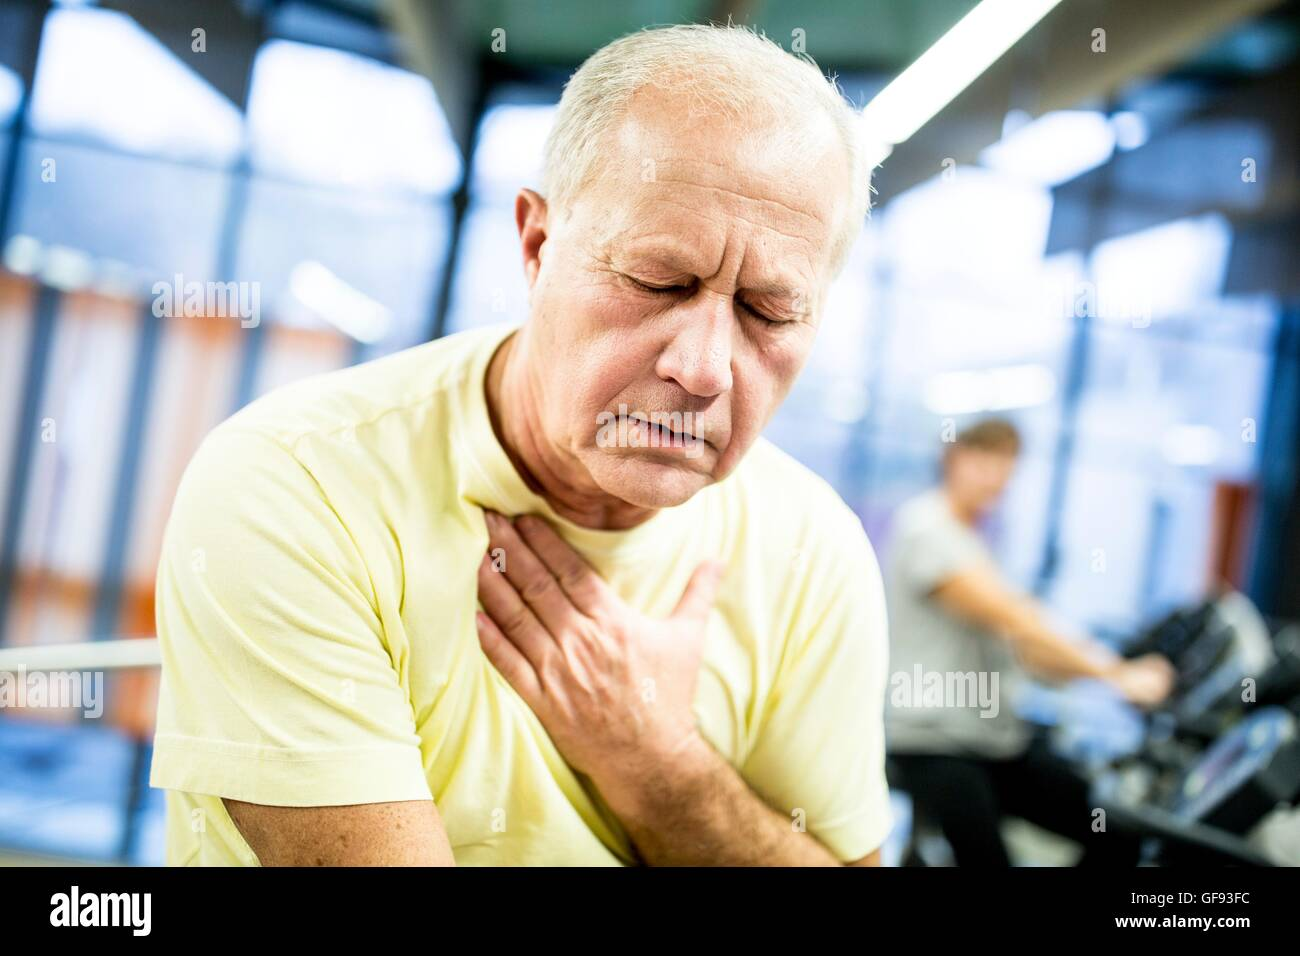 PROPERTY RELEASED. MODEL RELEASED. Exhausted senior man after exercising in gym. - Stock Image